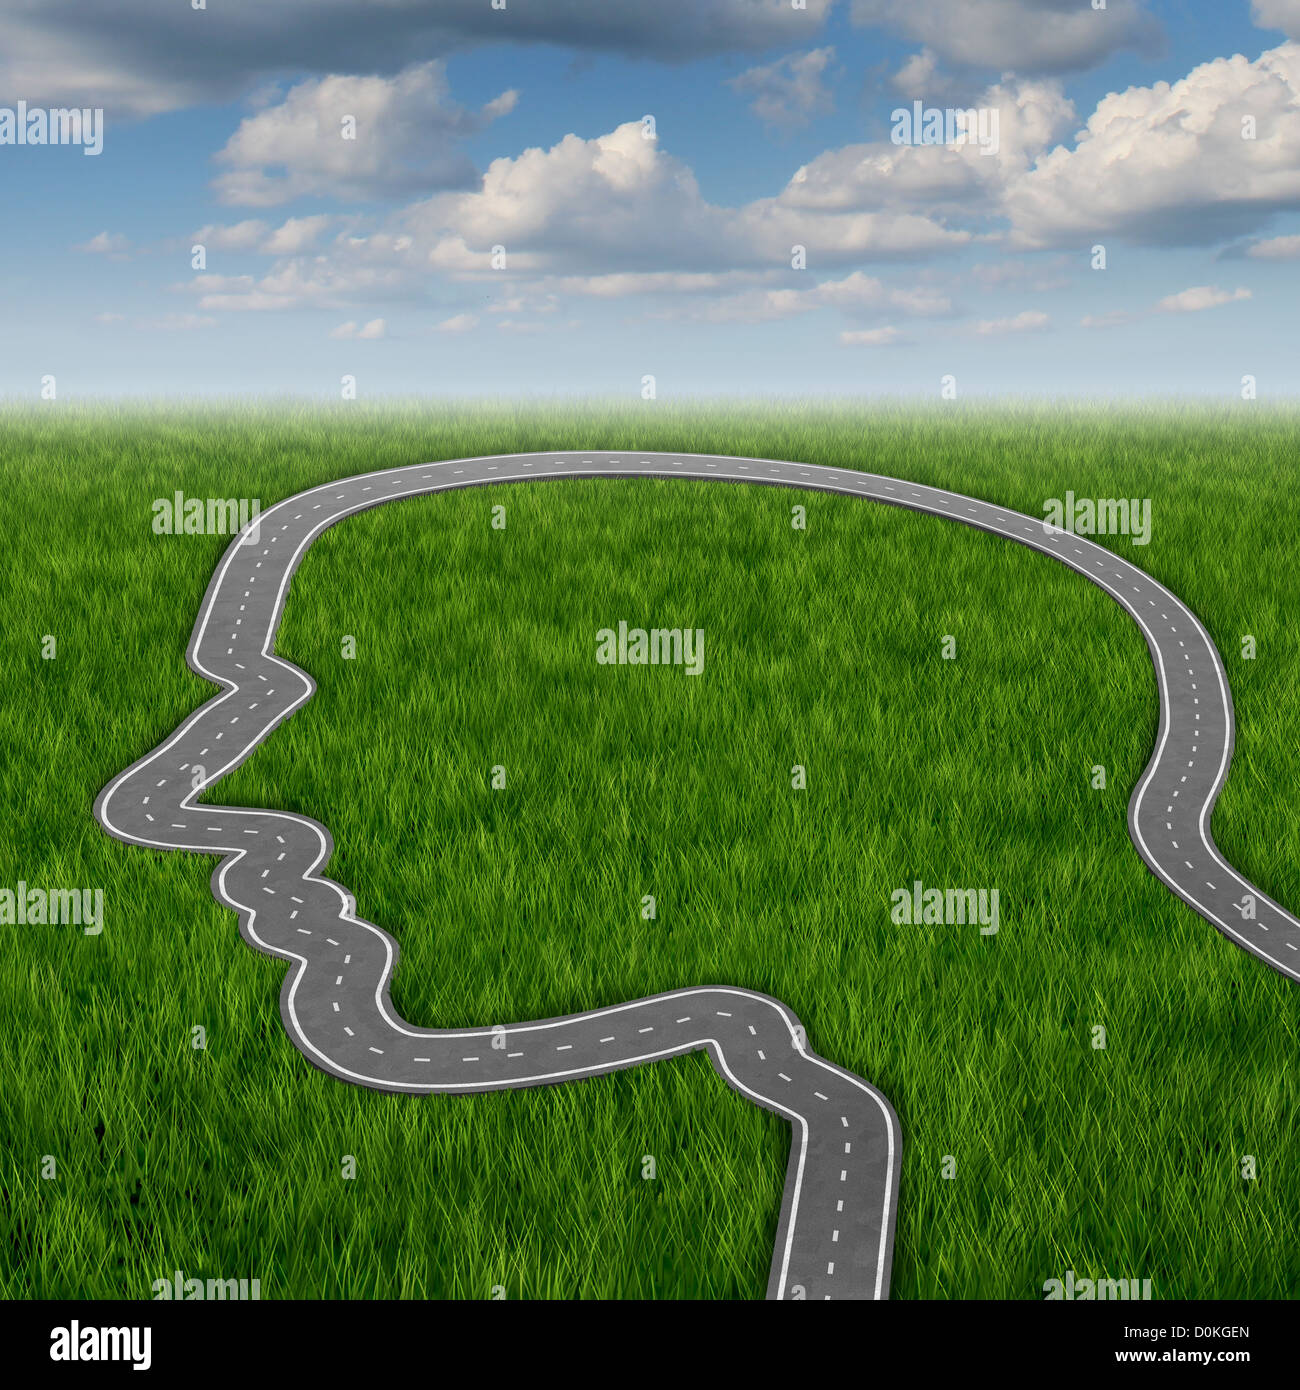 career path and business planning decisions through education and career path and business planning decisions through education and searching for financial opportunities as a road